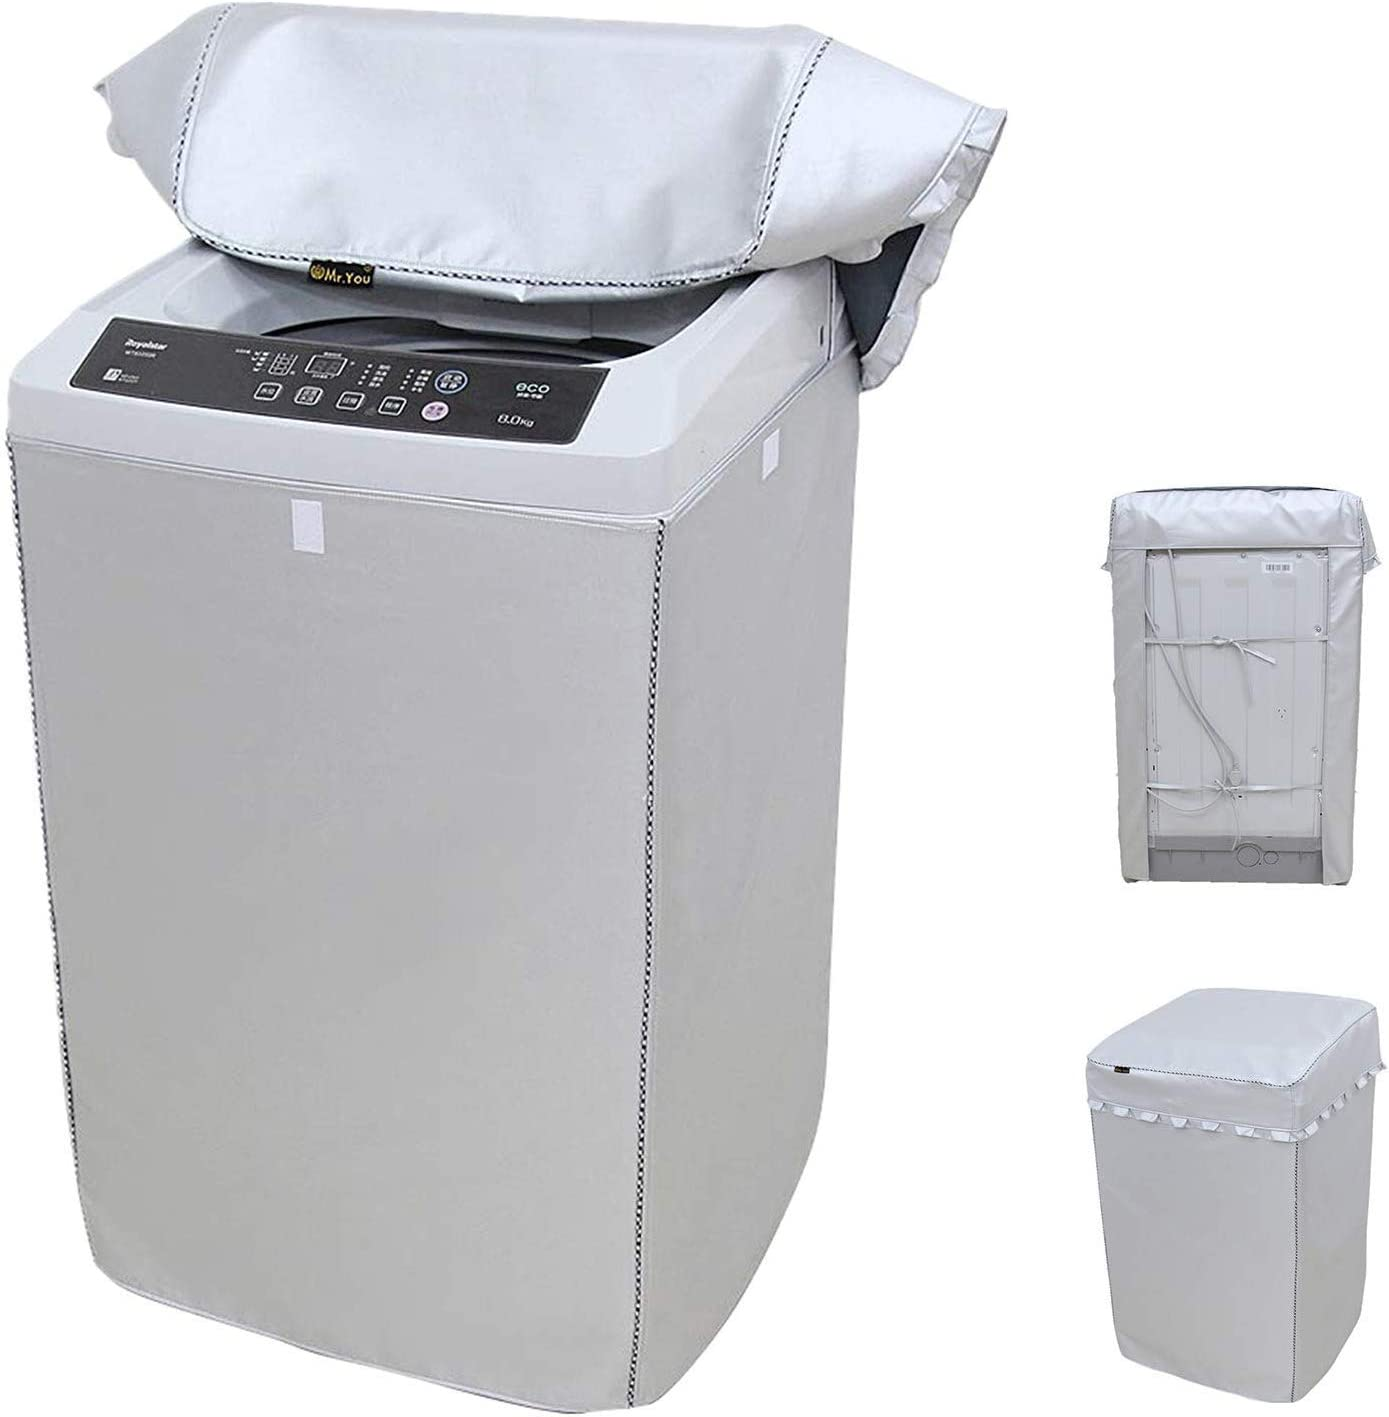 Washing Machine Cover Thickening Double-side silver coated fabric Waterproof Sunscreen dust-proof cover (L(W23D24H36in), Silver)